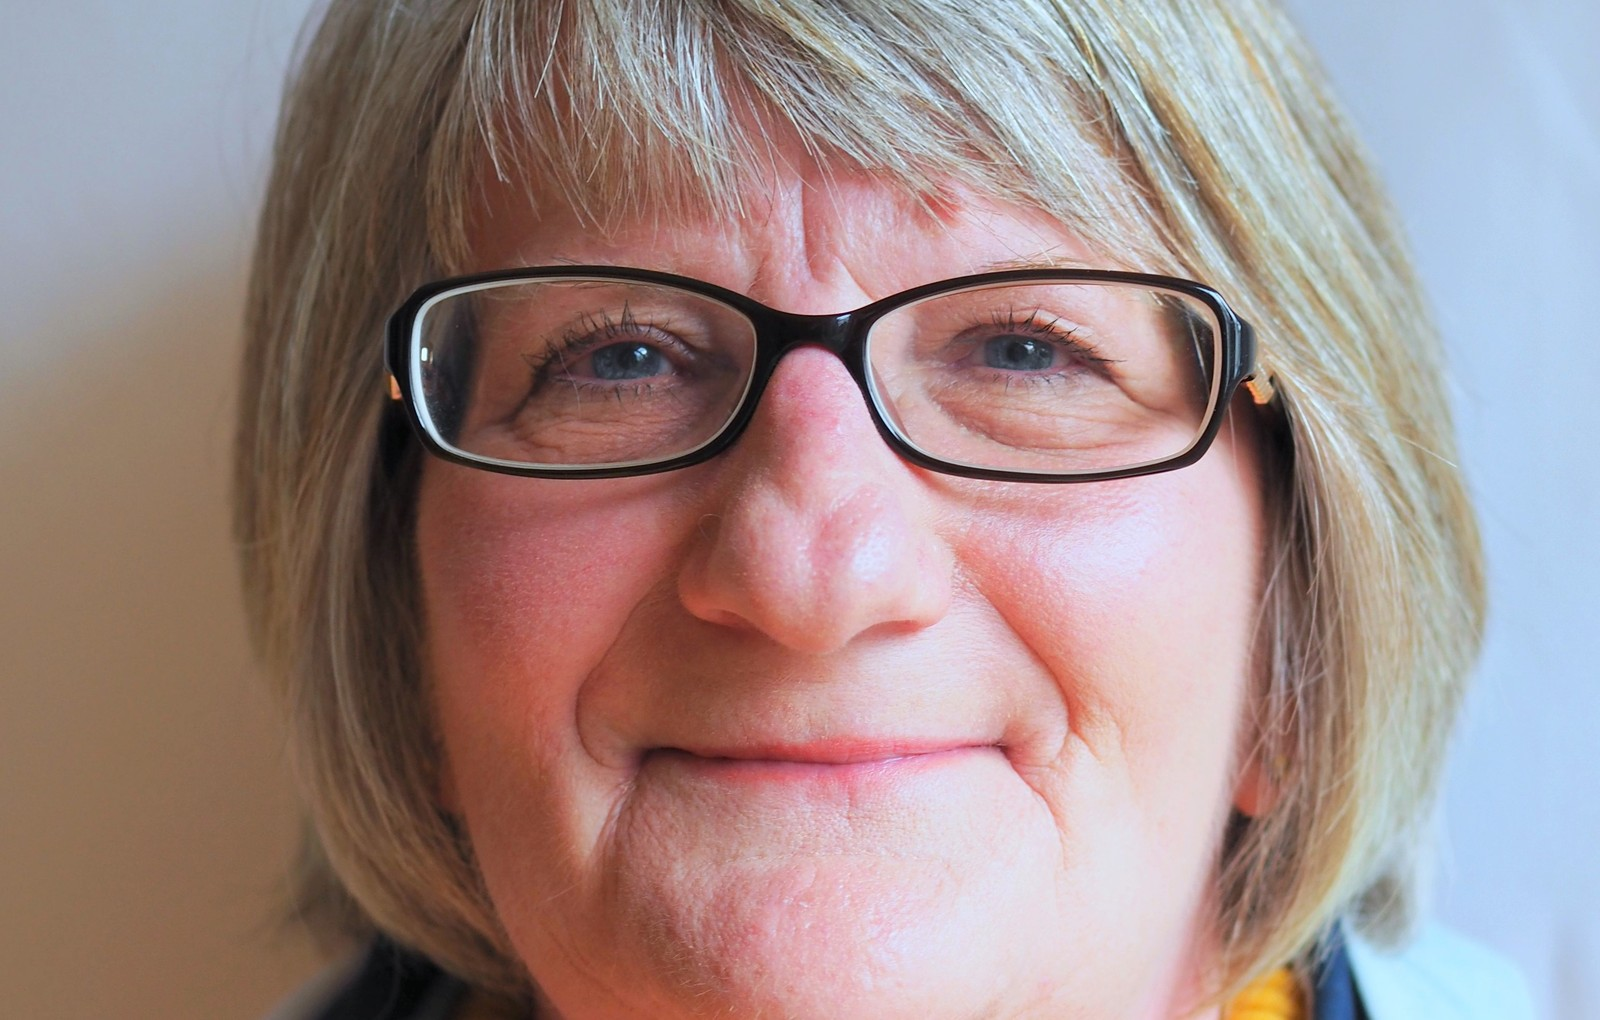 Deb Shiner, OLRG election candidate - Oxted South Ward